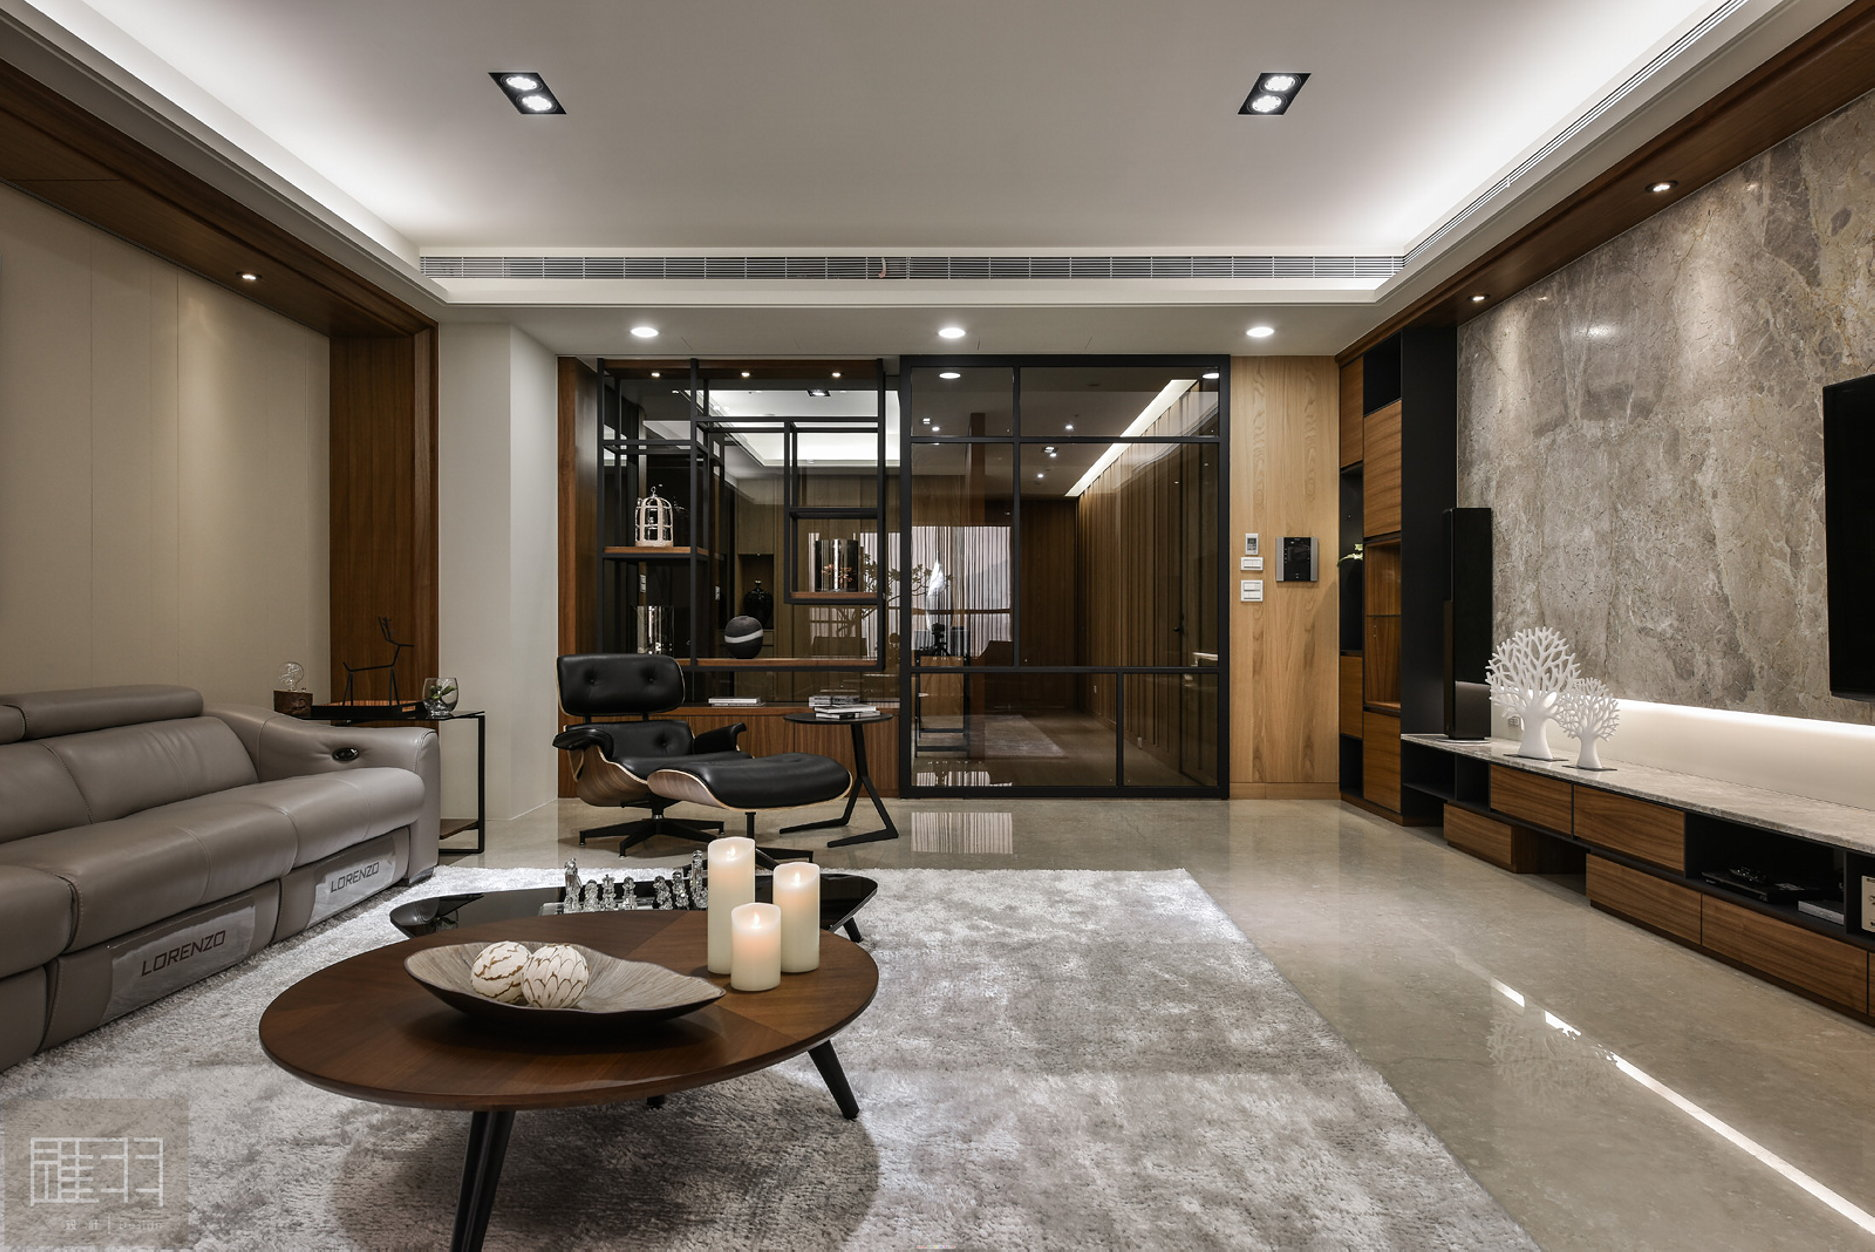 interior of the apartment in taiwan from manson hsiao, hui-yu